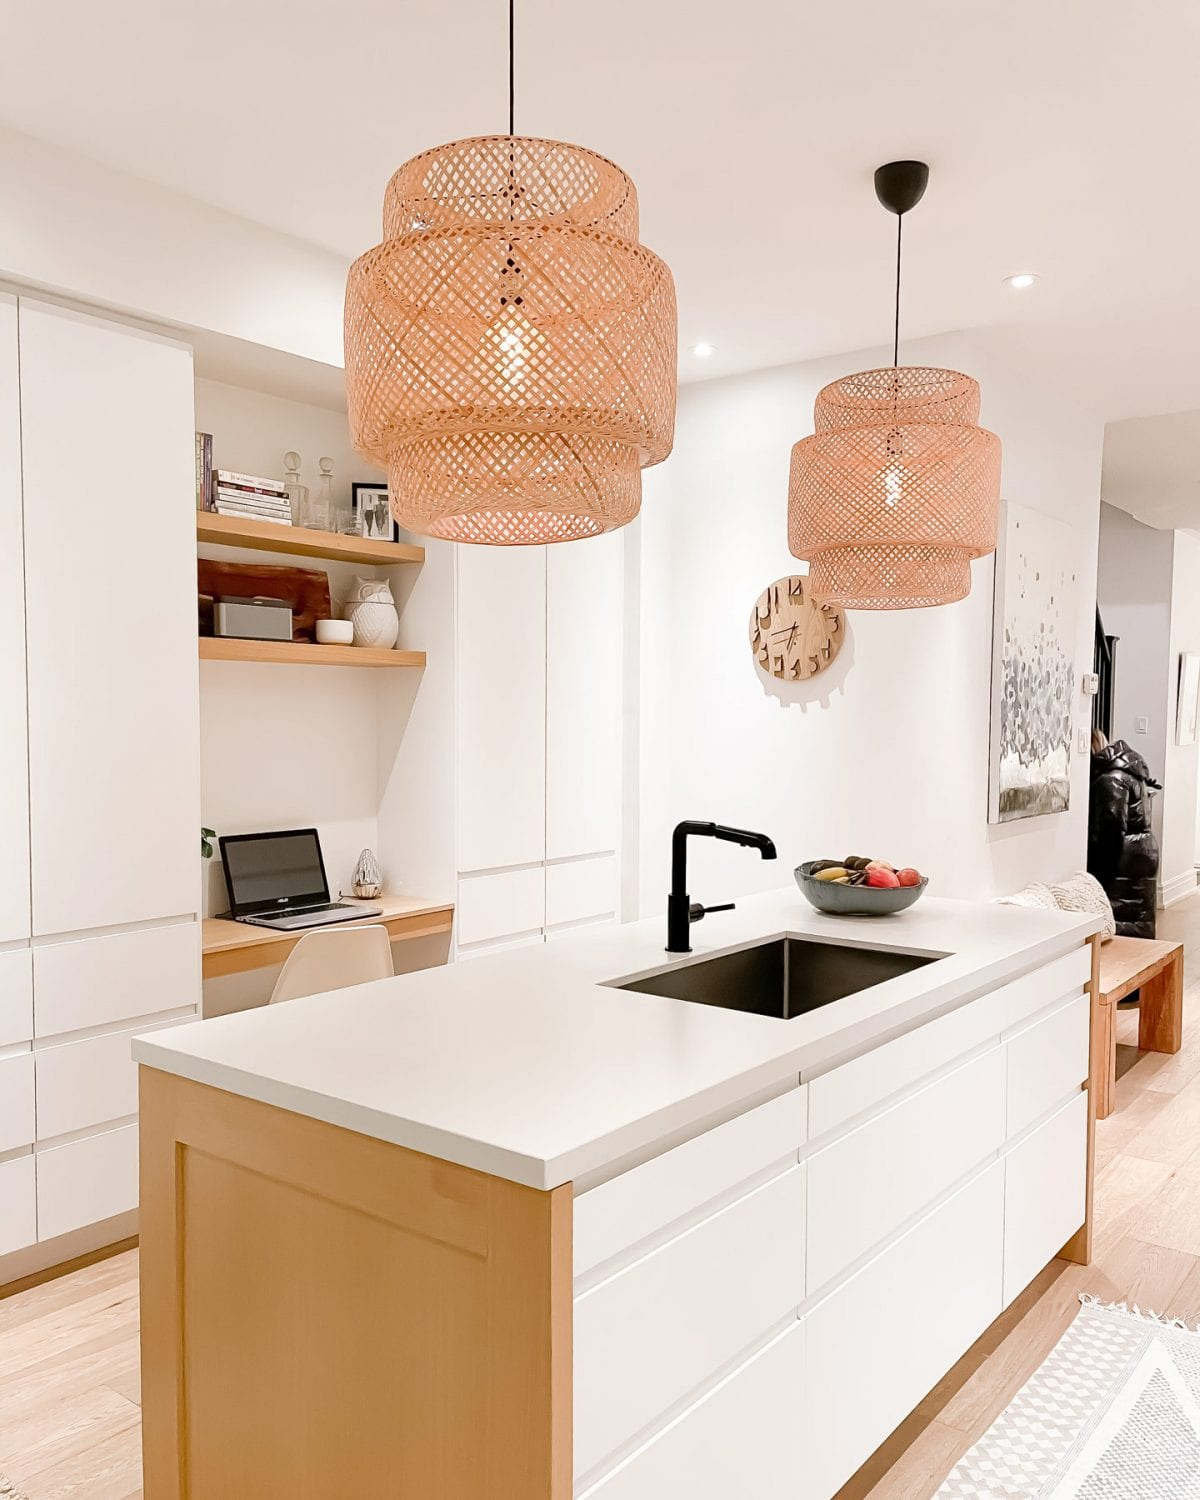 Kitchen desk area - white kitchen with wood accents and basket pendant lights.